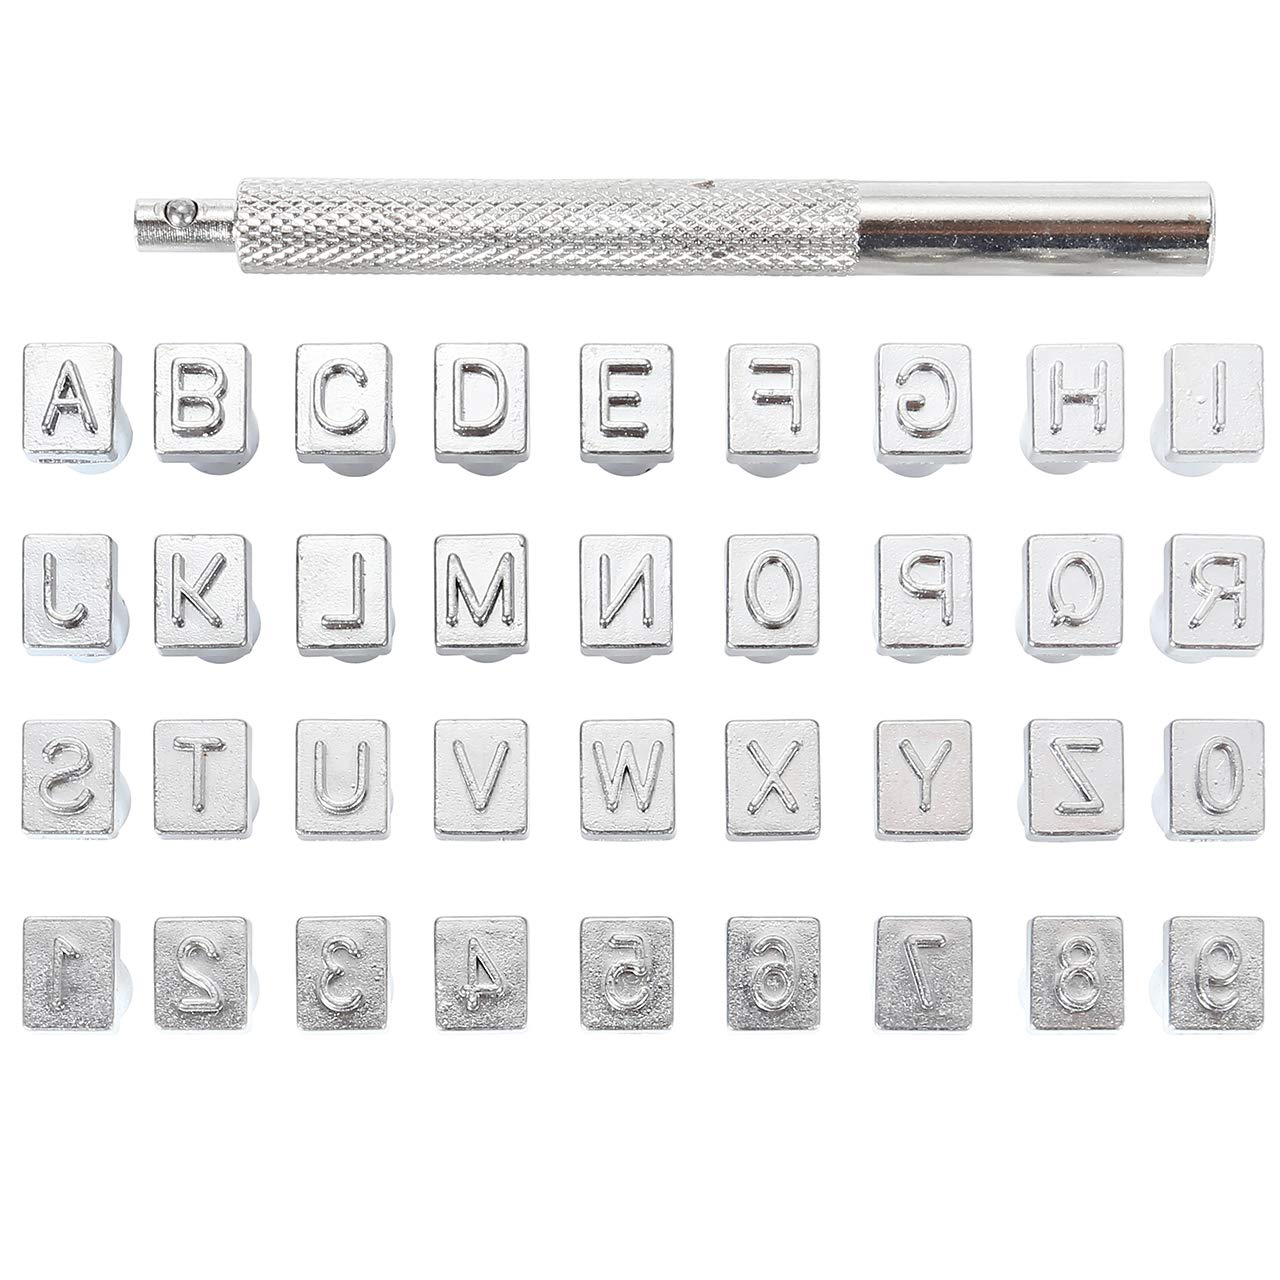 Saddle Making Tools Leather Craft Carving Embossing Stamp 6mm Letter Alphabet and Number Stamp Punch Kit 26 Letters Alphabet from A-Z /& 10 Numbers 0-9